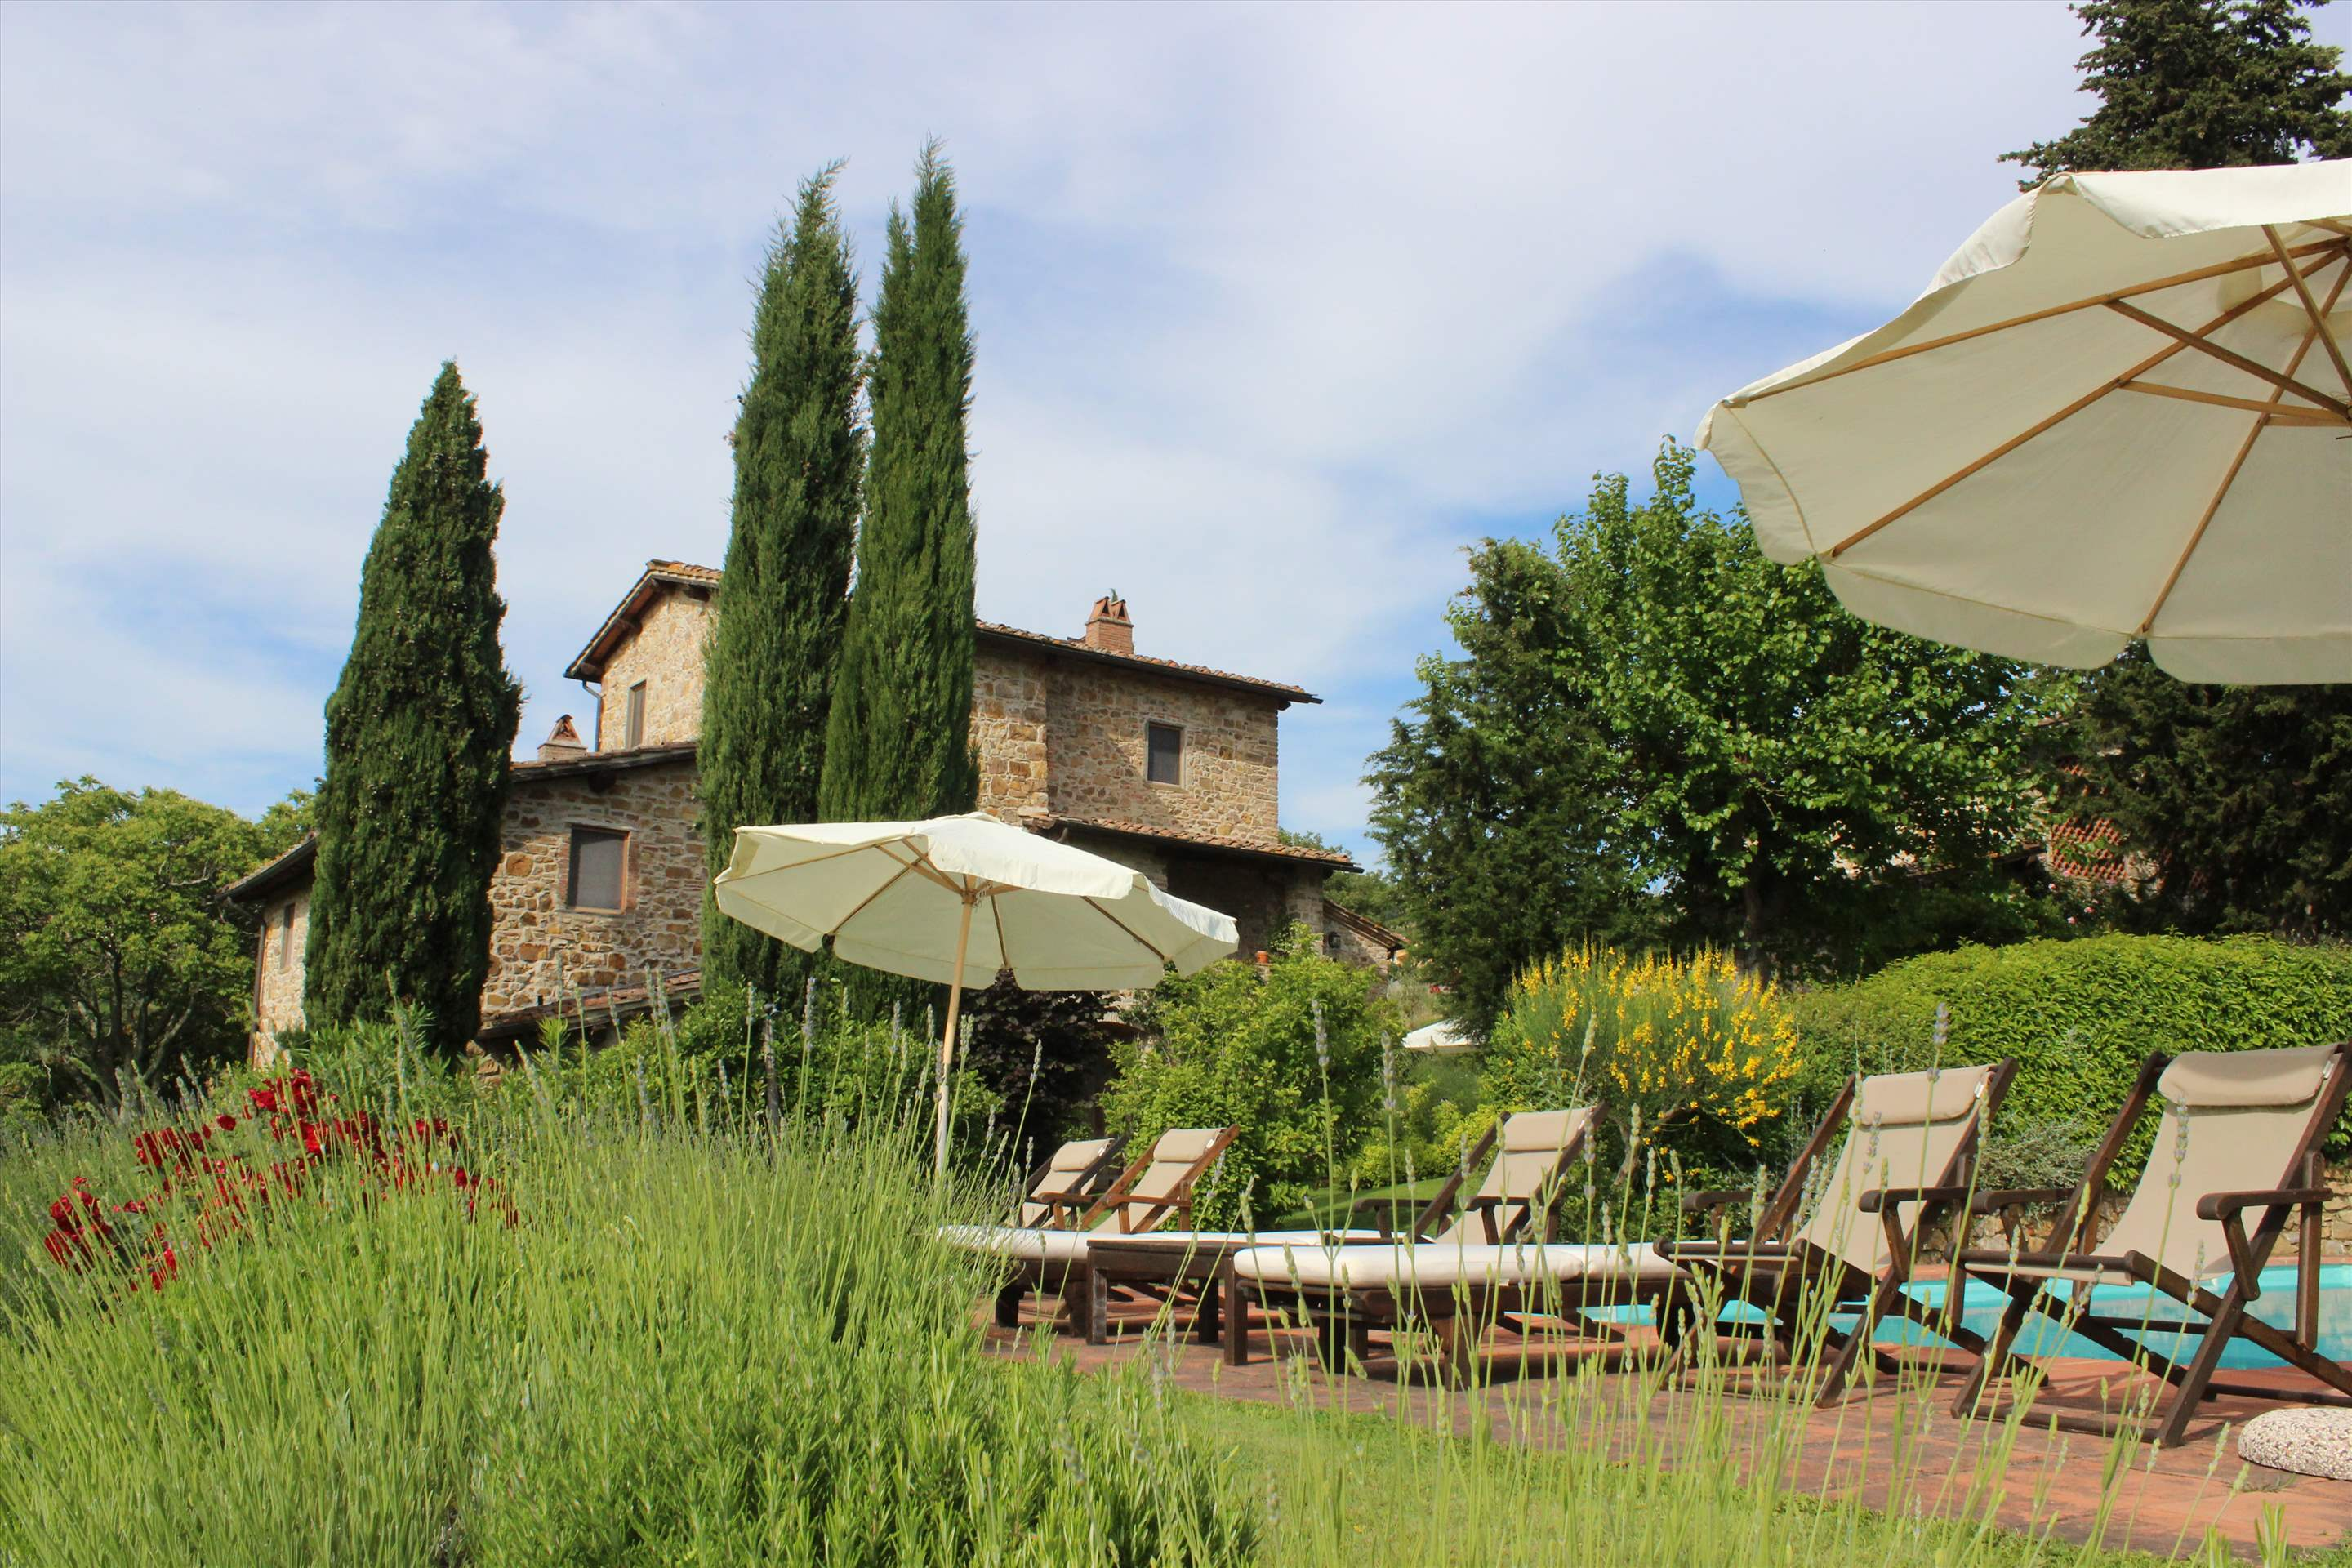 Casas Ferruzzi, 8 bedroom apartment in Chianti & Countryside, Tuscany